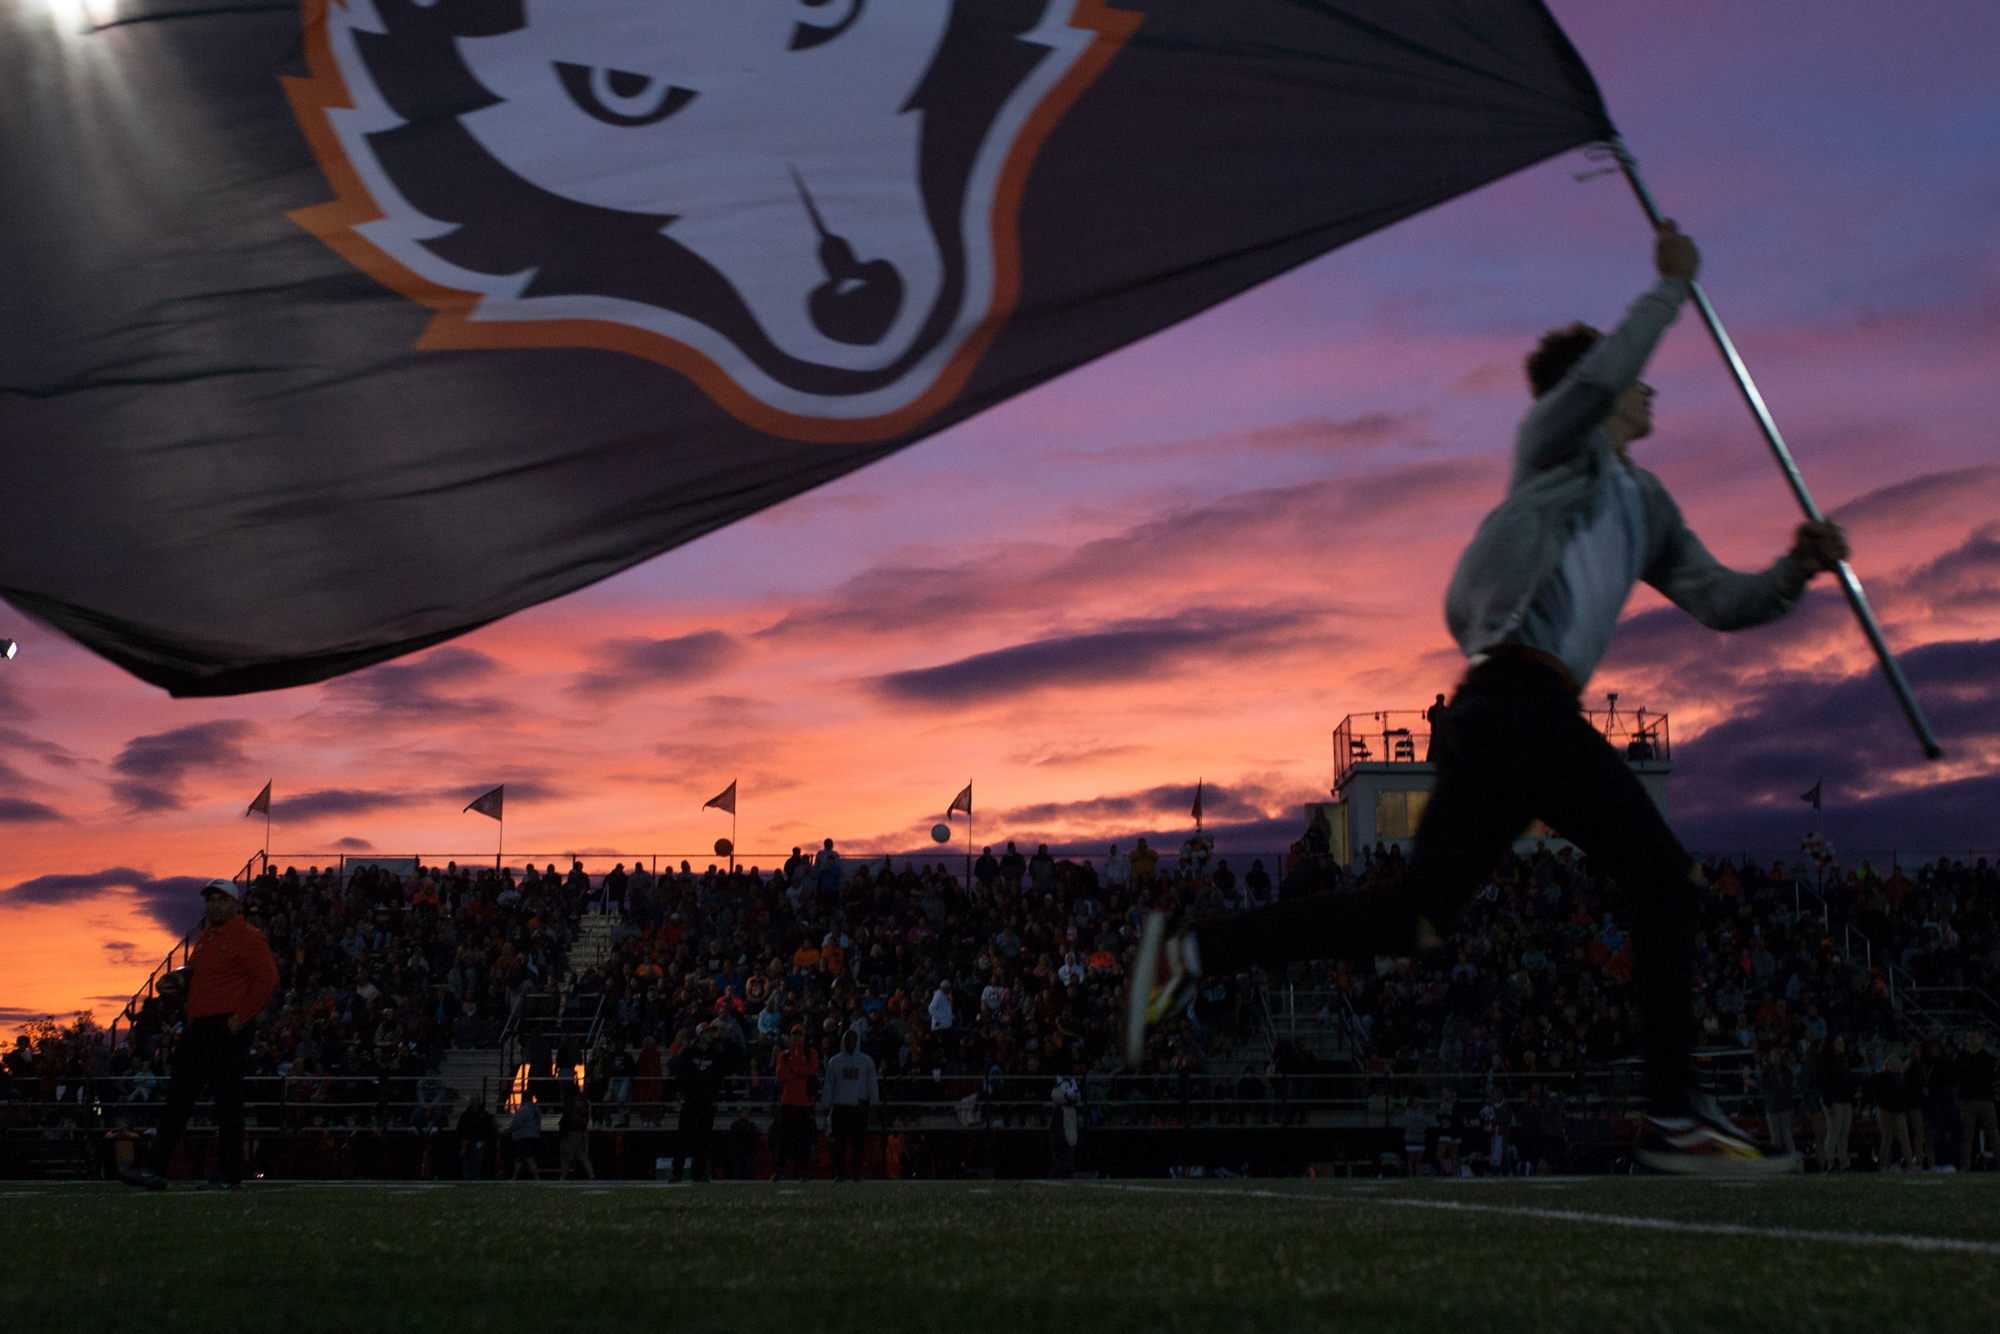 Harlem's football team takes the field during their Homecoming game against Boylan on Friday, Sept. 21, 2018, at Harlem High School in Machesney Park. [SCOTT P. YATES/RRSTAR.COM & THE JOURNAL-STANDARD STAFF]